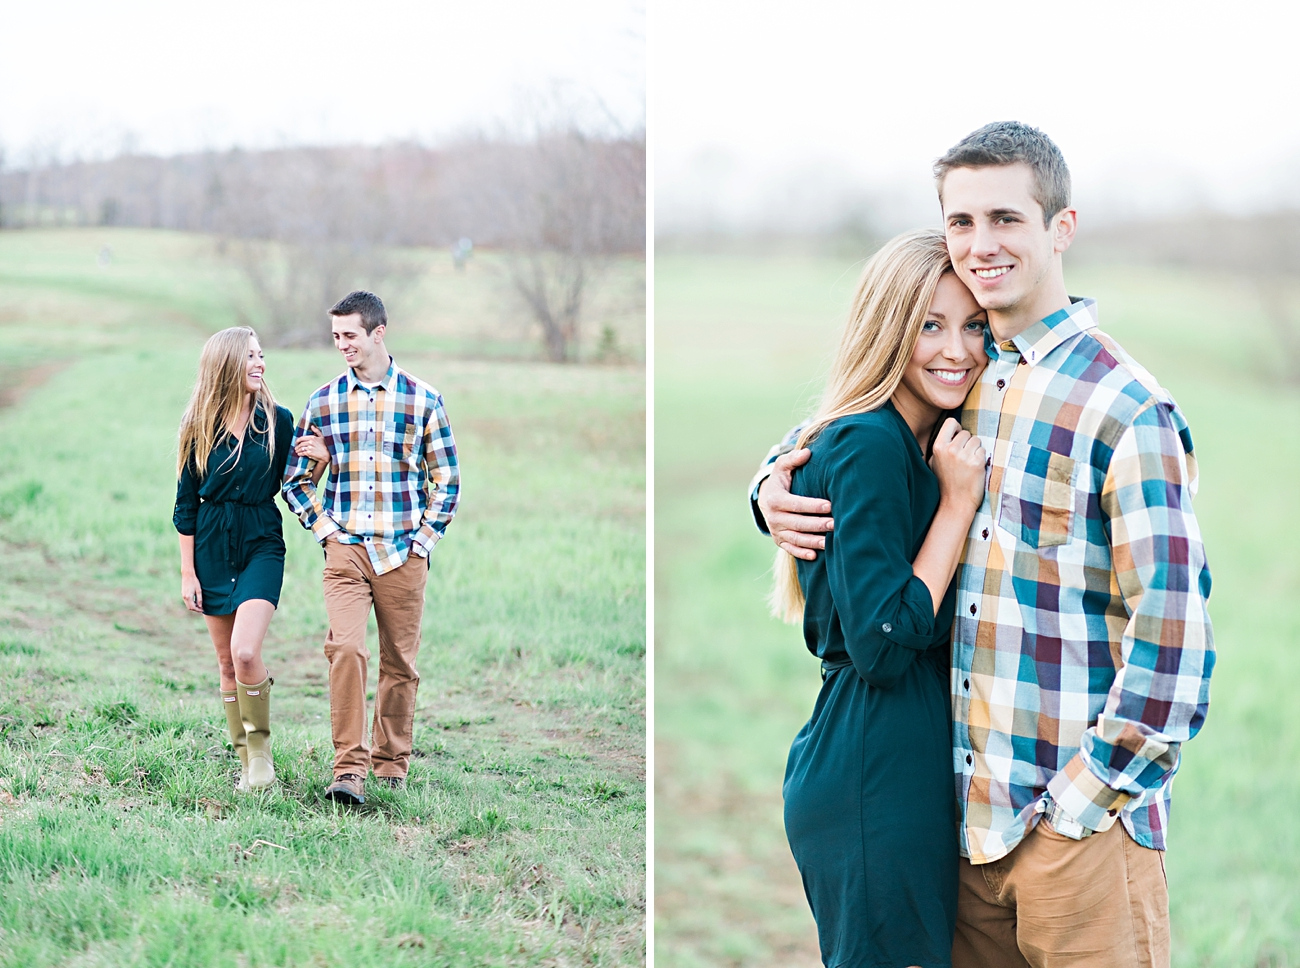 Brittany-Kriss-Engagement-Shoot059.jpg